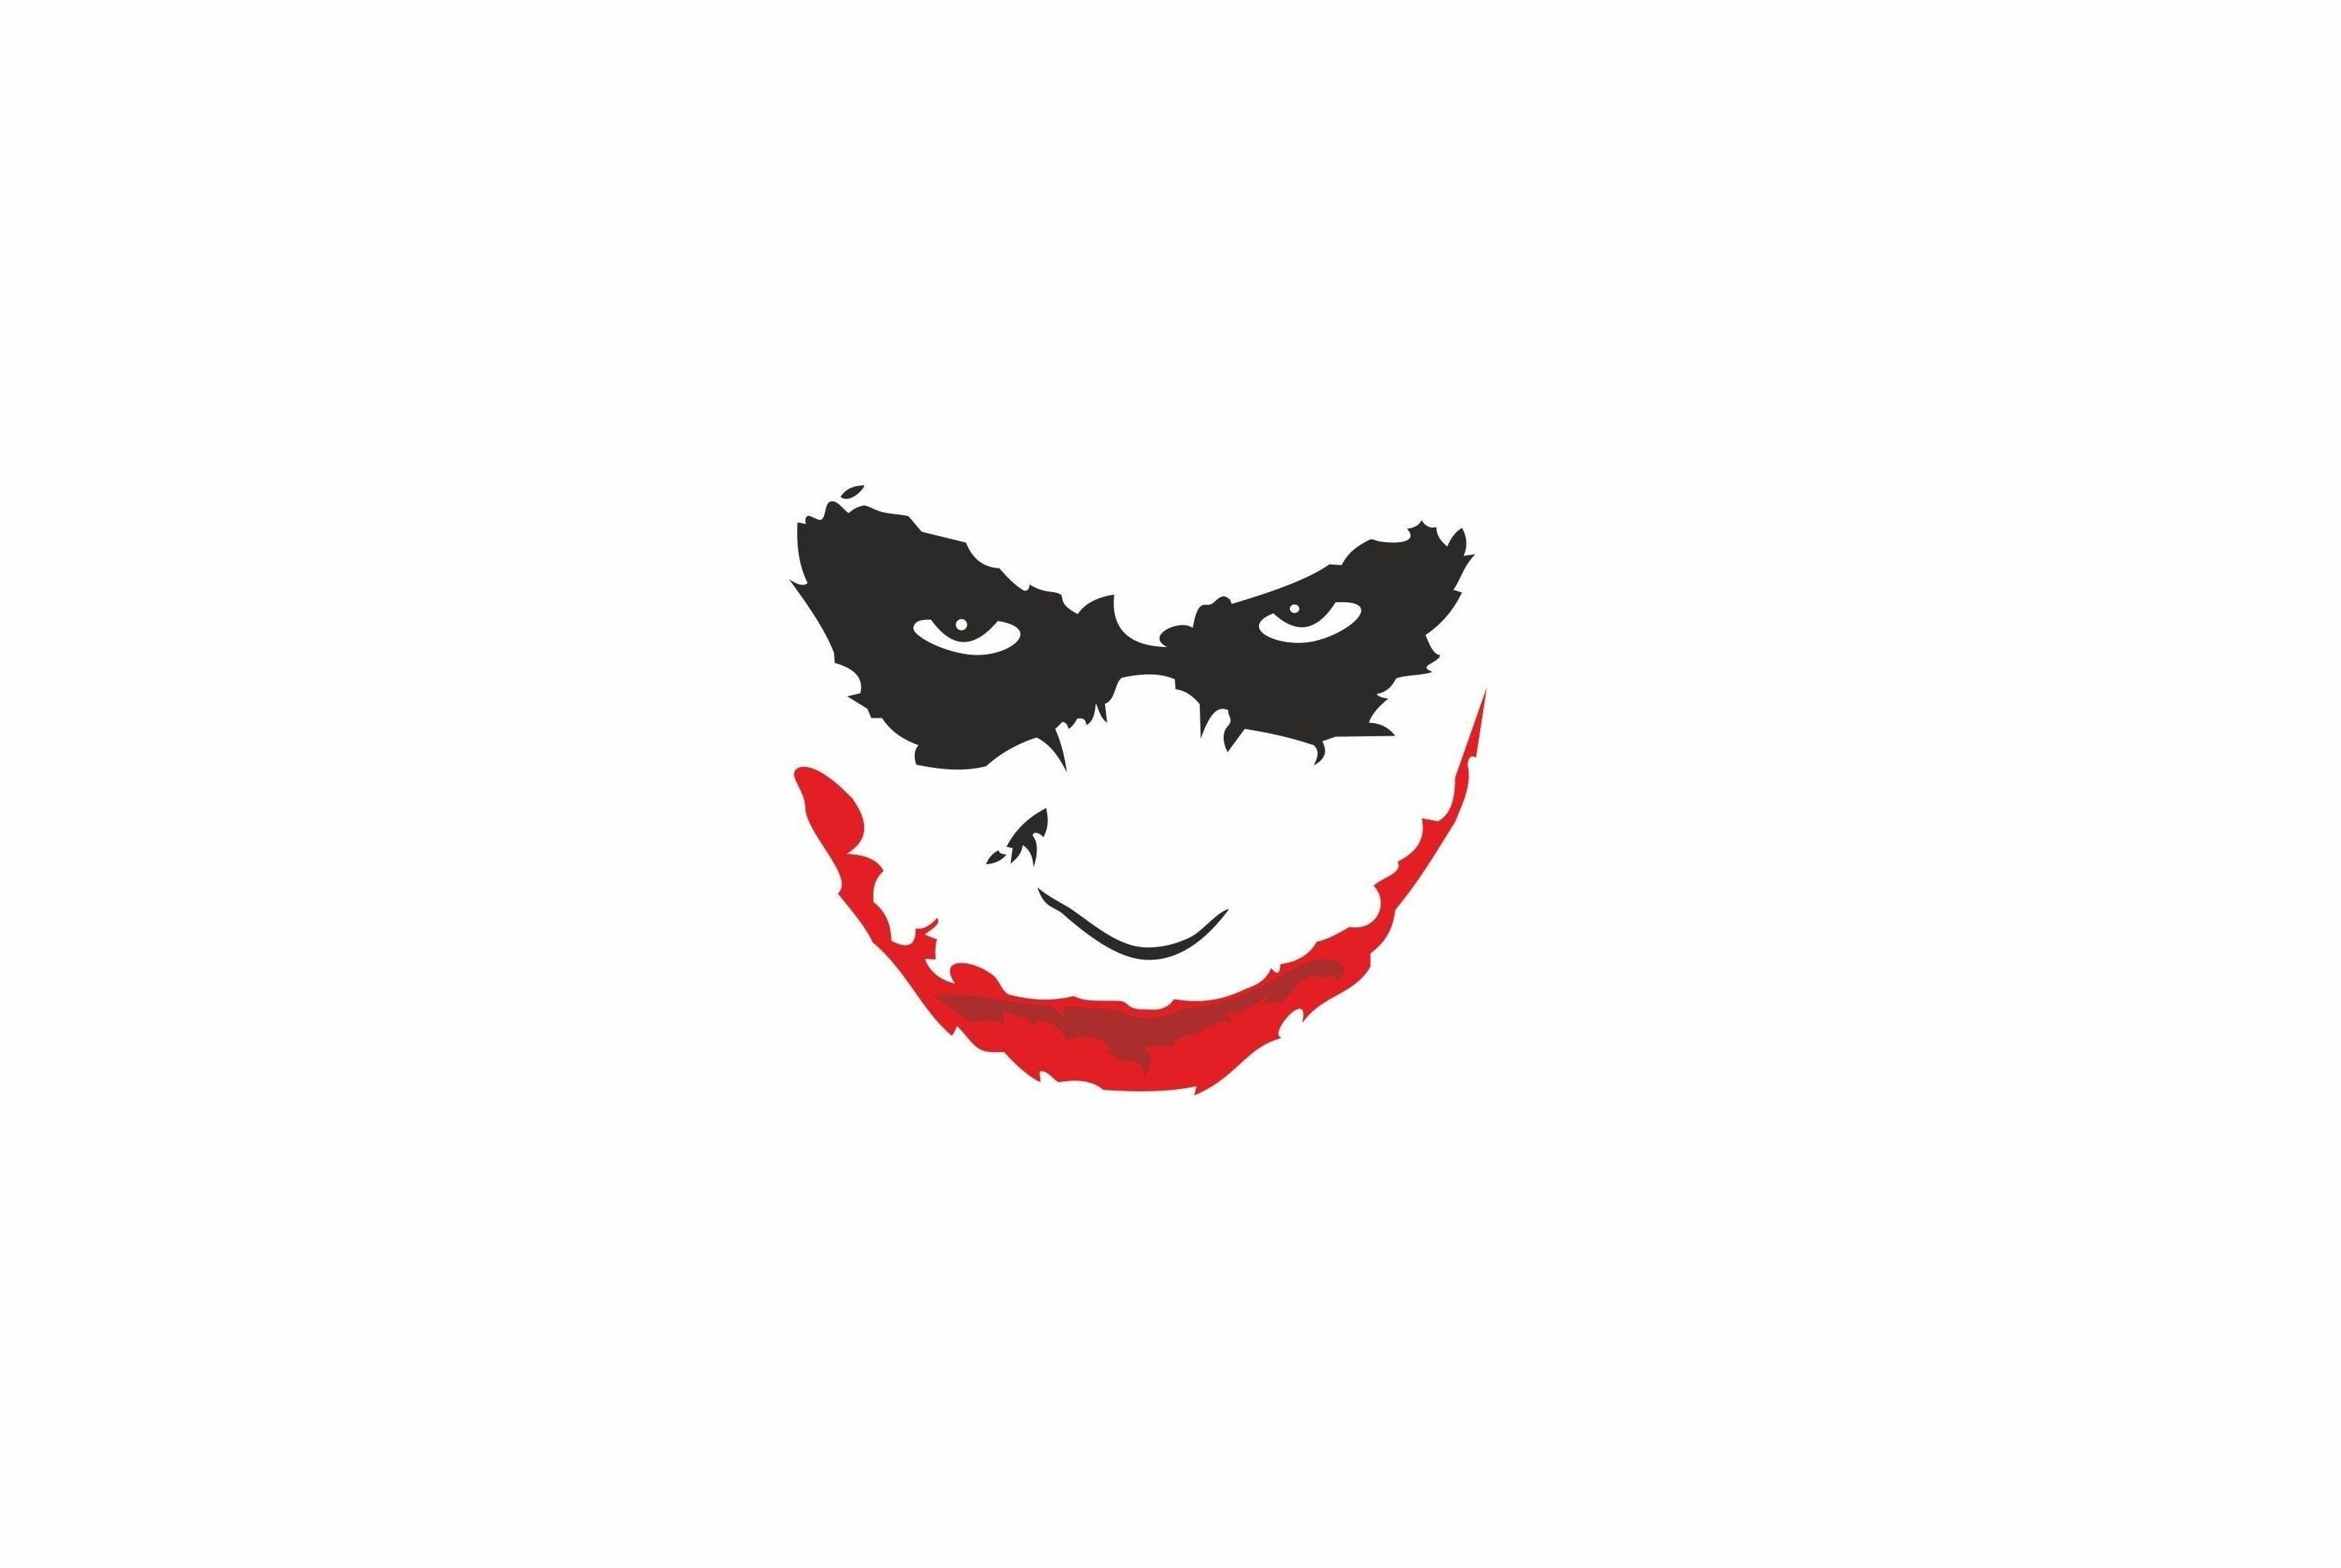 Red eyes black abstract. Joker clipart mobile hd